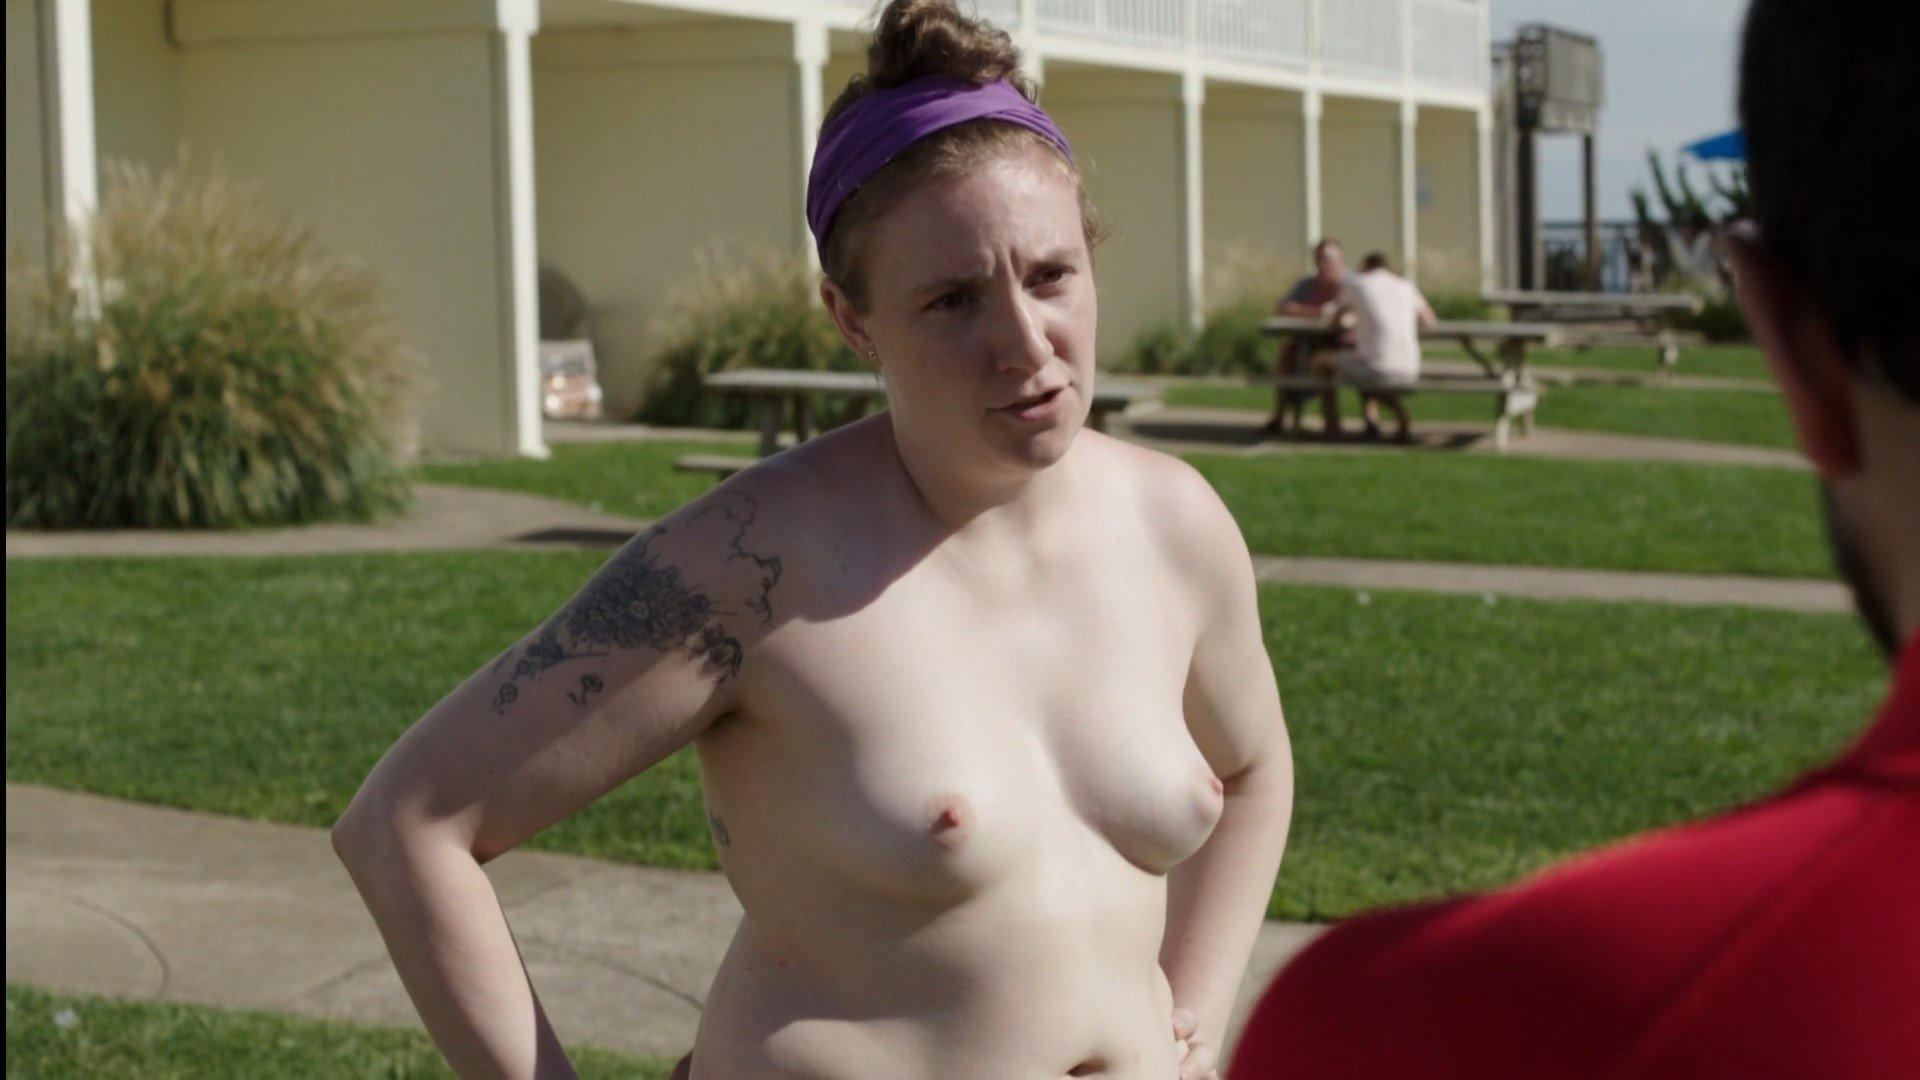 Lena dunham nude topless and sex in girls s03e10 5